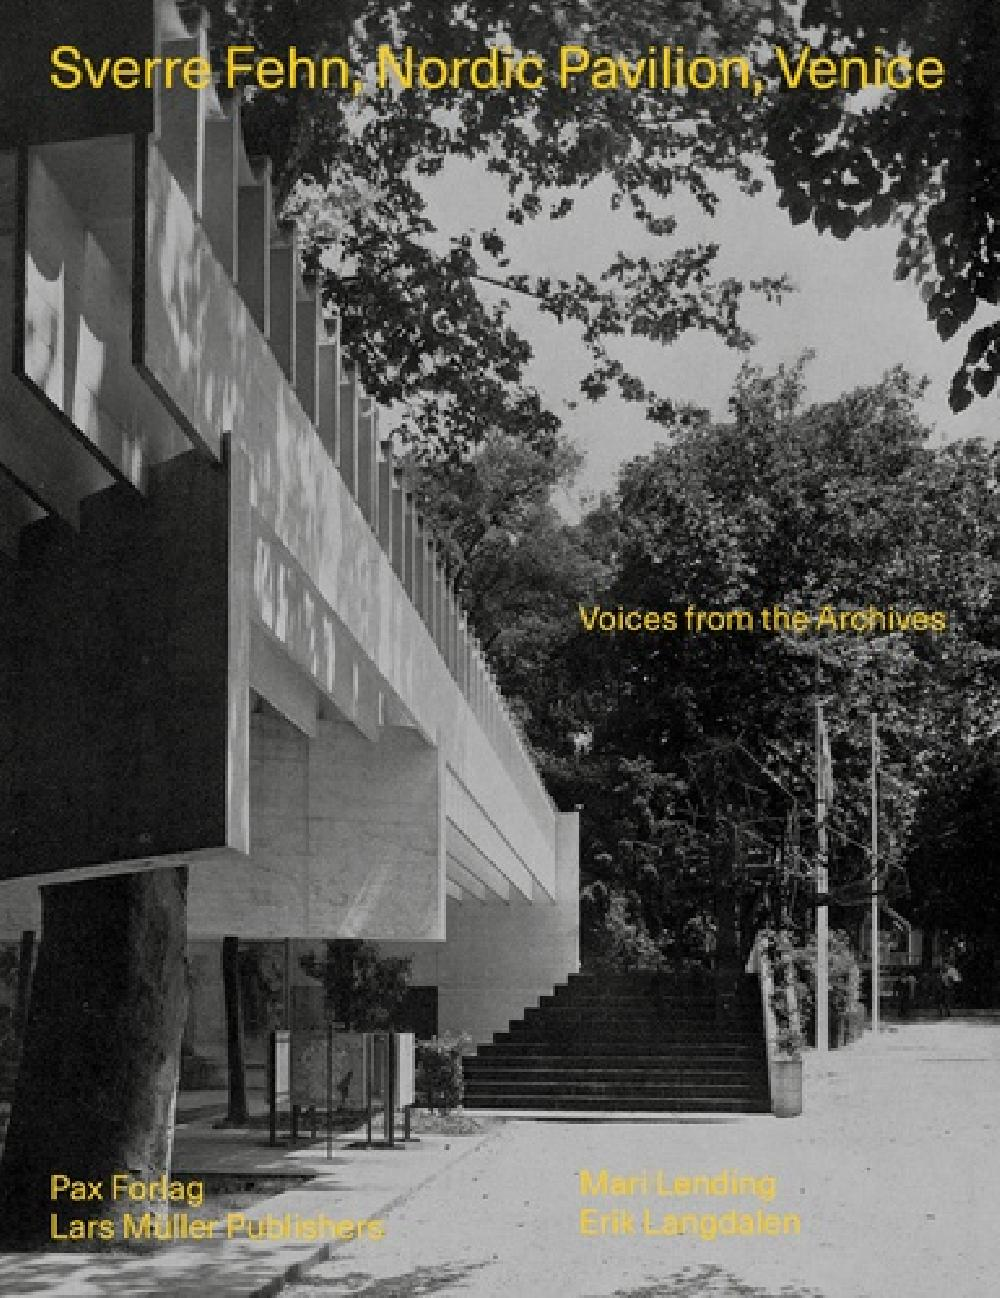 Sverre Fehn: Nordic Pavilion, Venice - Voices from the Archives